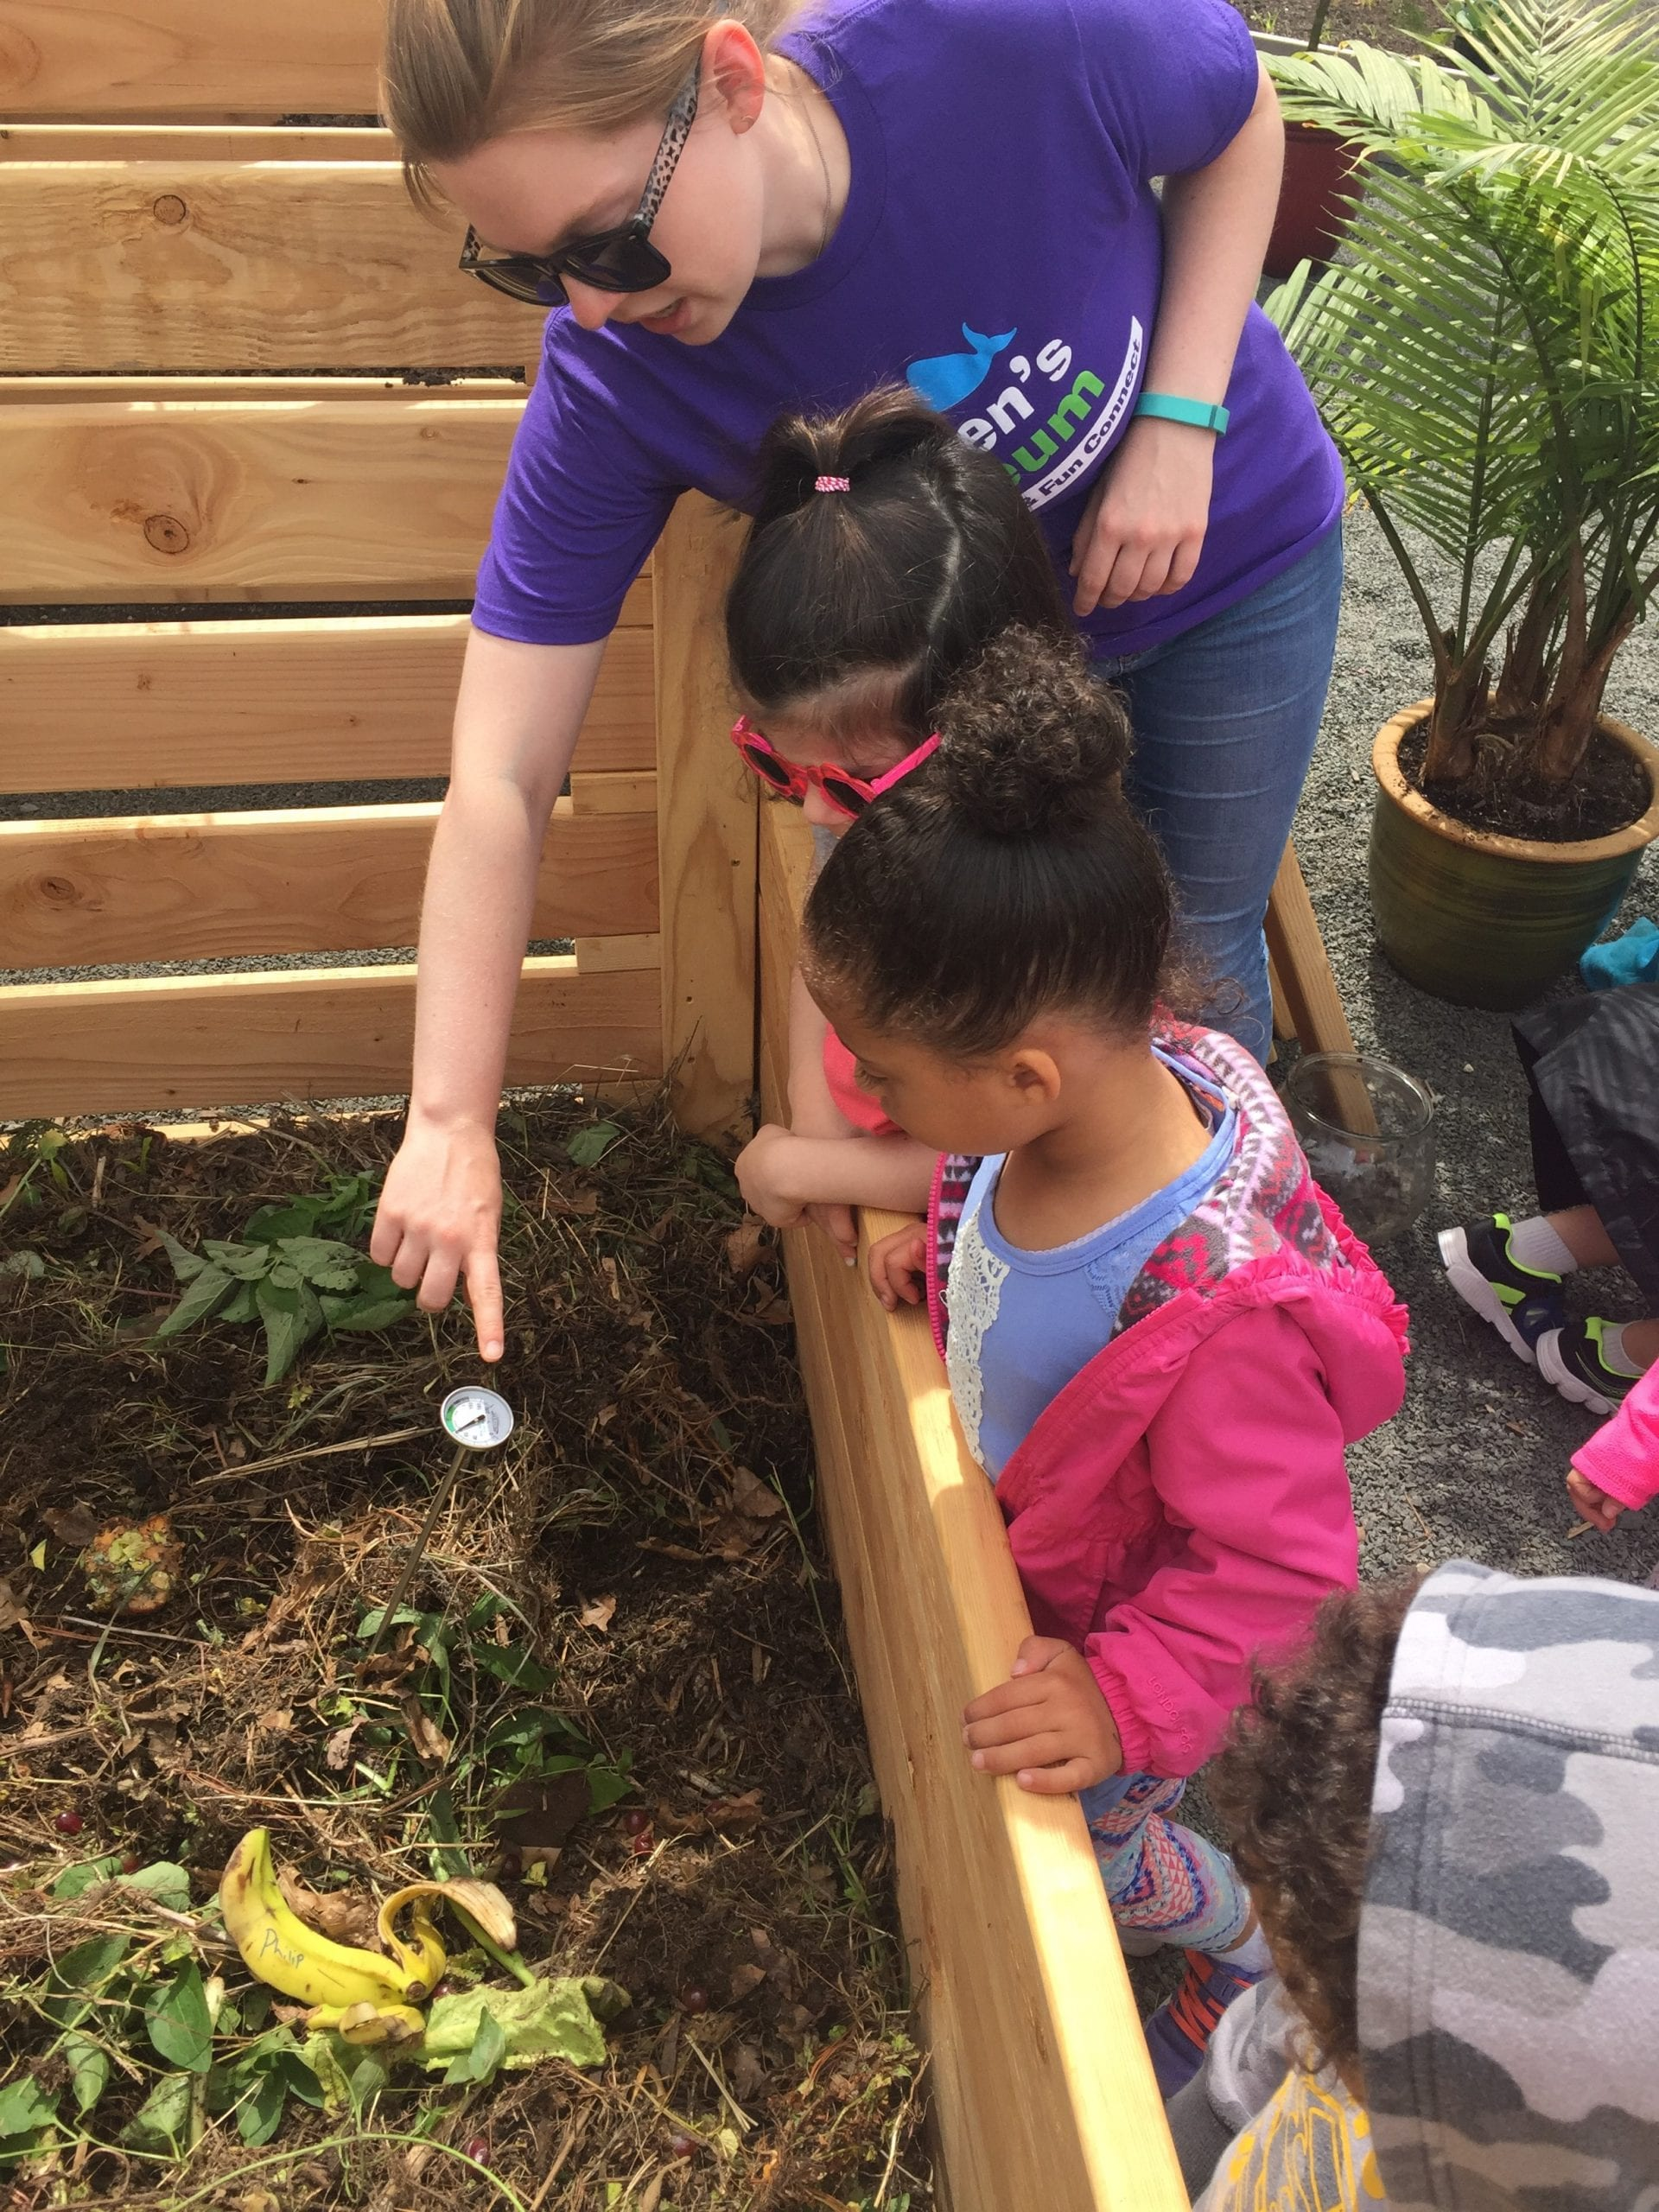 Kids Can Compost - We-Ha | West Hartford News